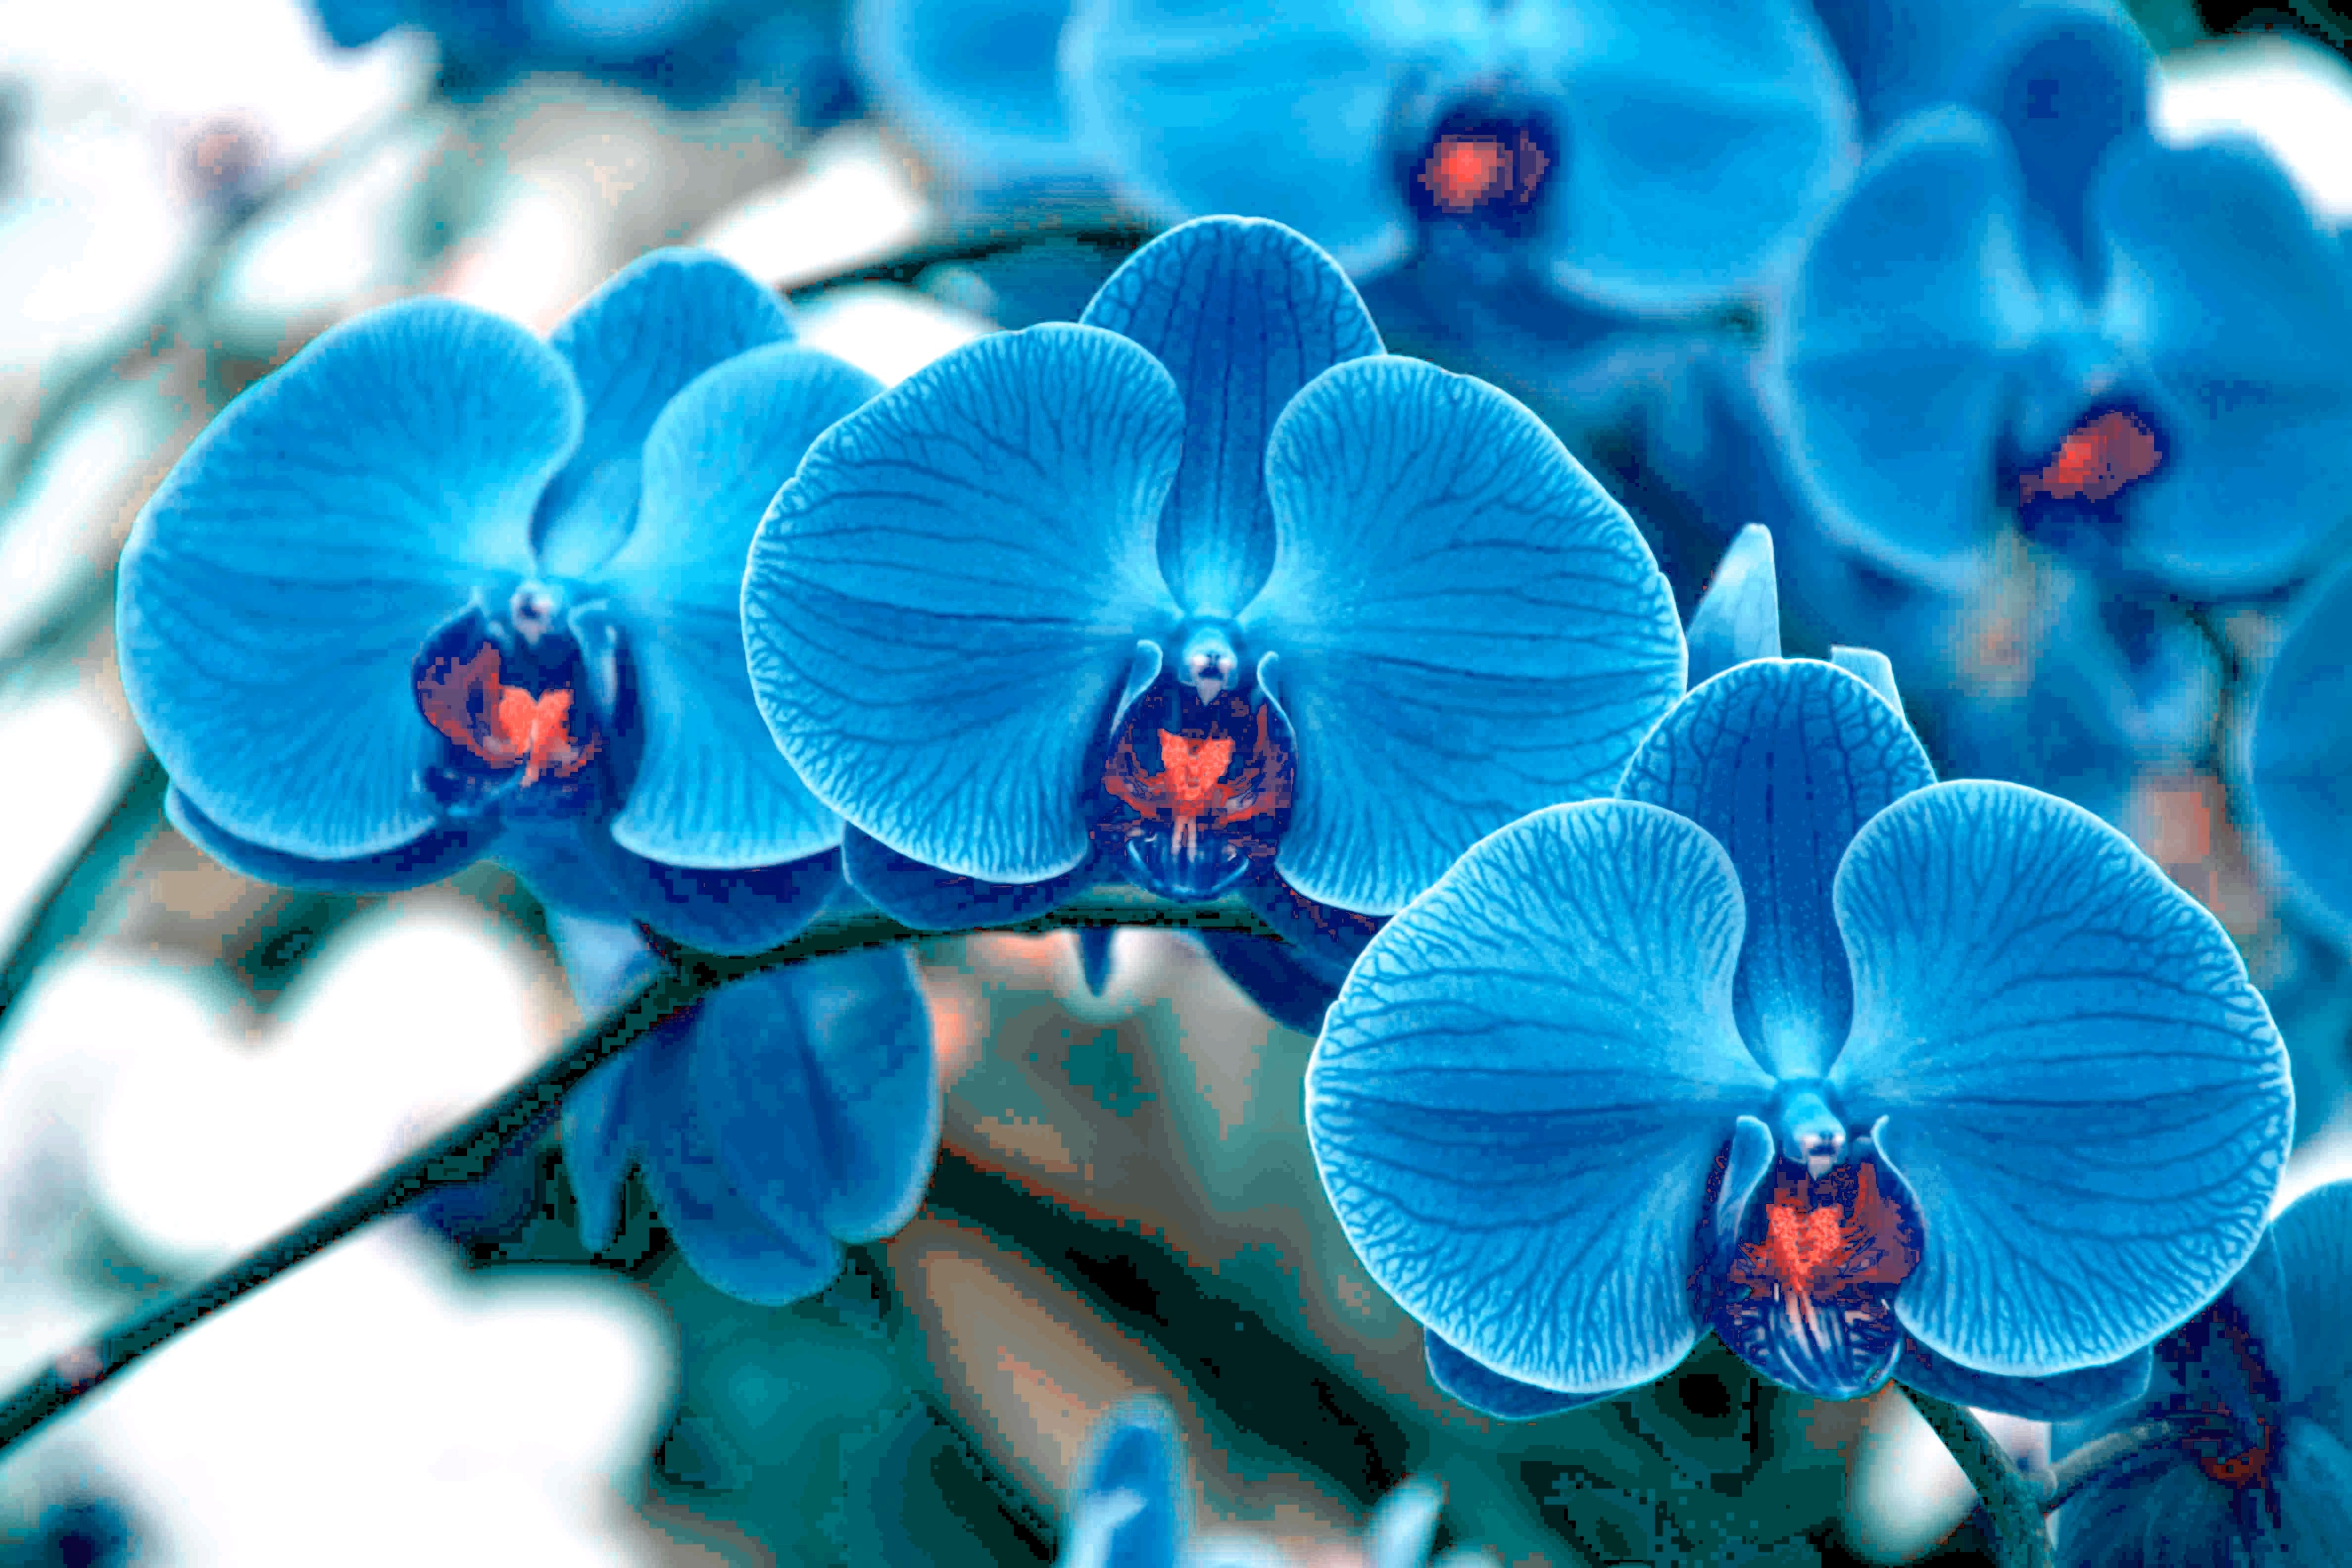 3526 Blue Orchid Jpg 4752 3168 Orchid Wallpaper Blue Orchids Orchids